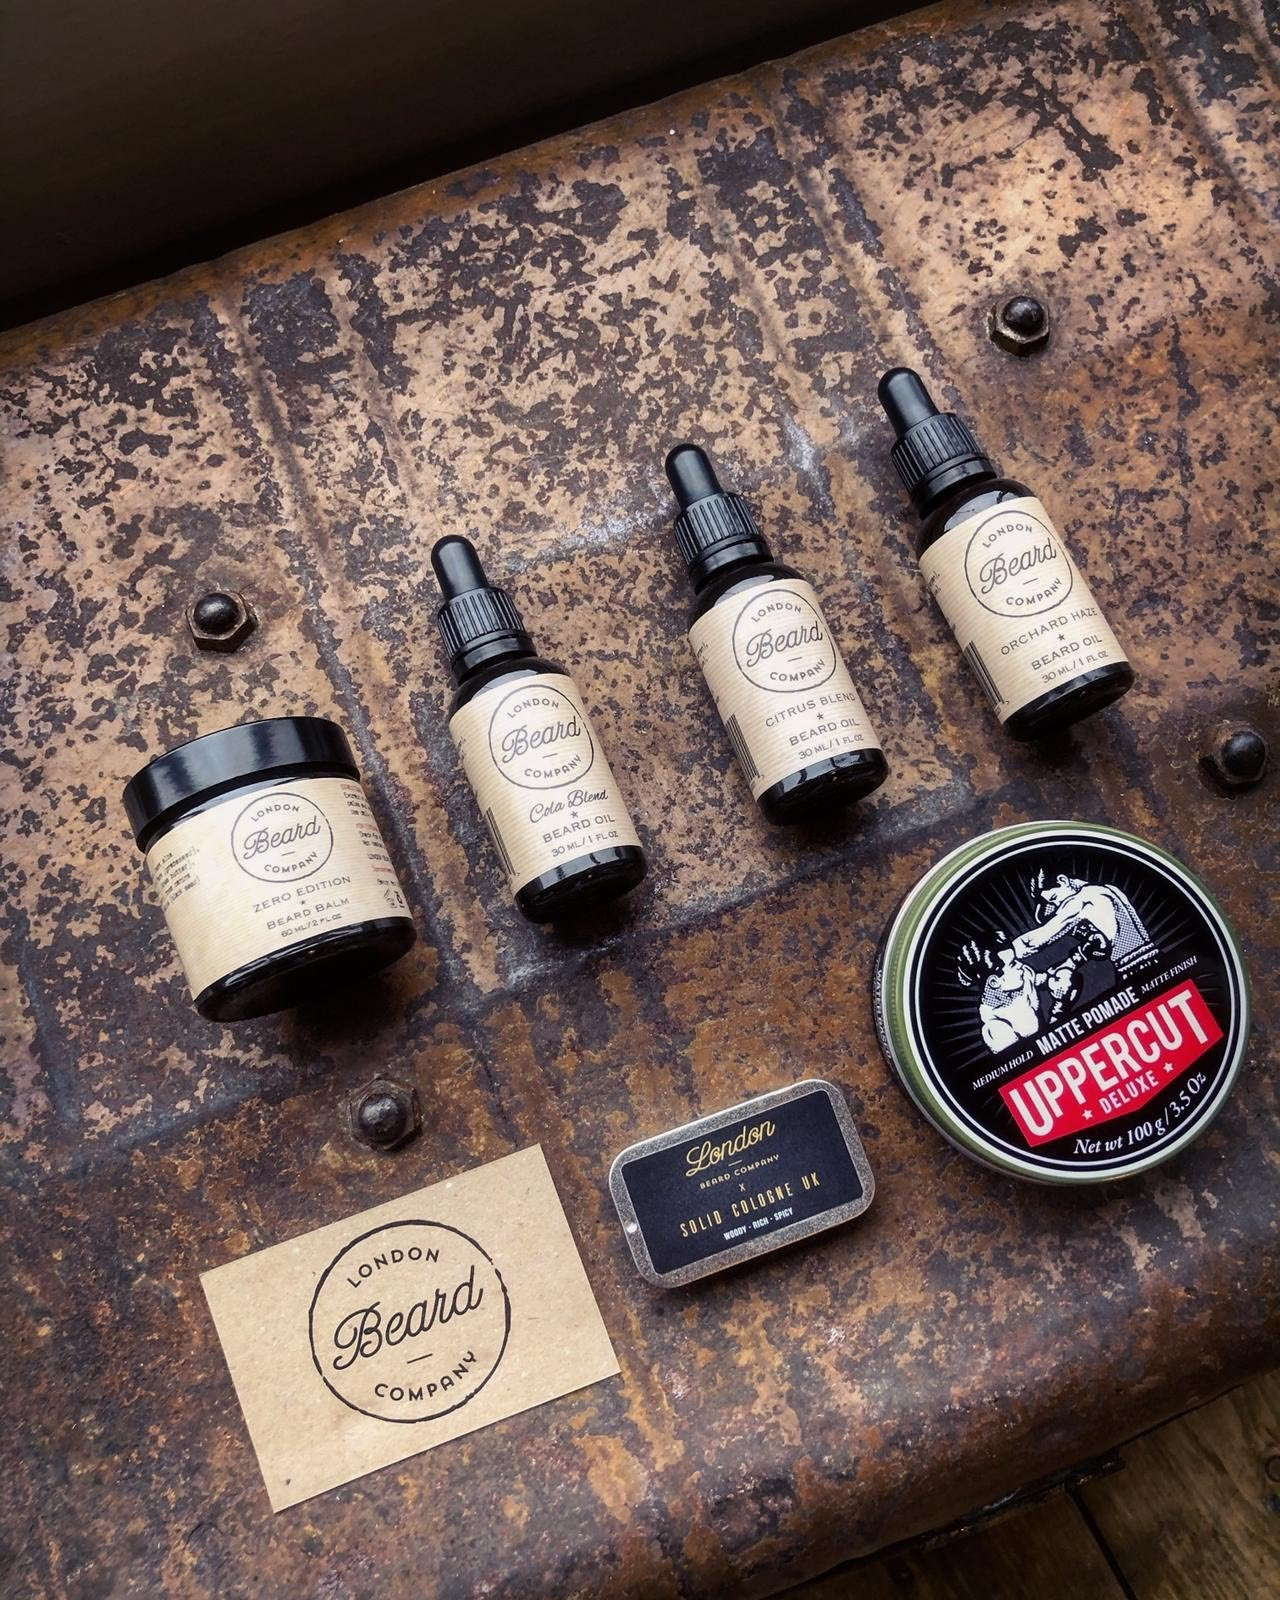 London Beard Company Products